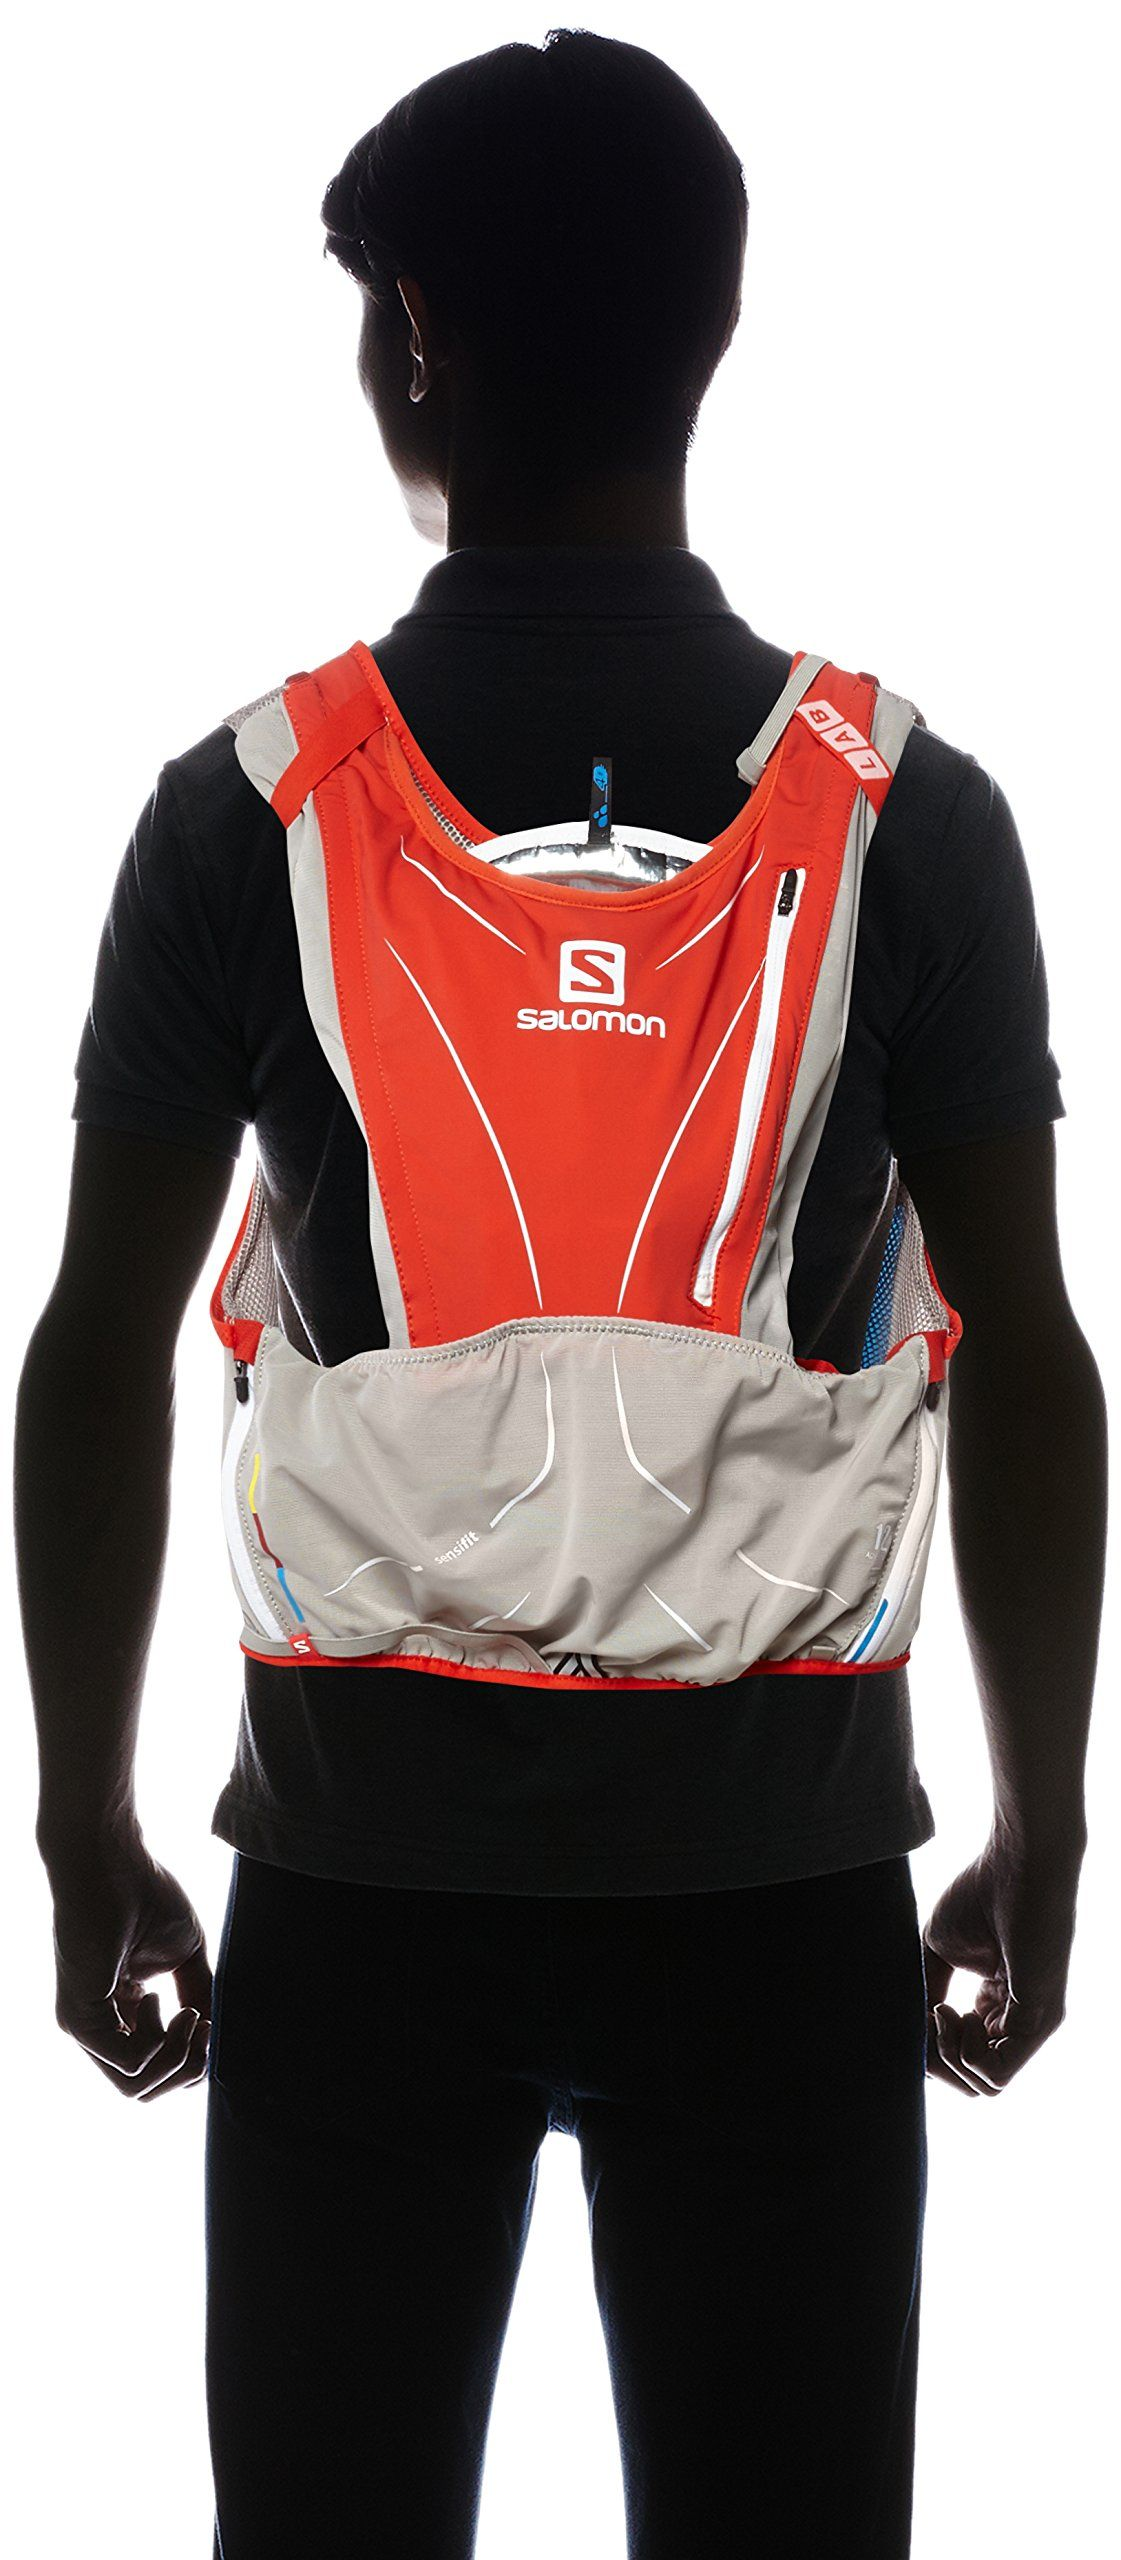 Salomon Slab Adv Skin 12 Set Racing Red Aluminium Xs S You Can Get More Details By Clicking On The Image This Is An Affil Cycling Outfit Clothes Salomon